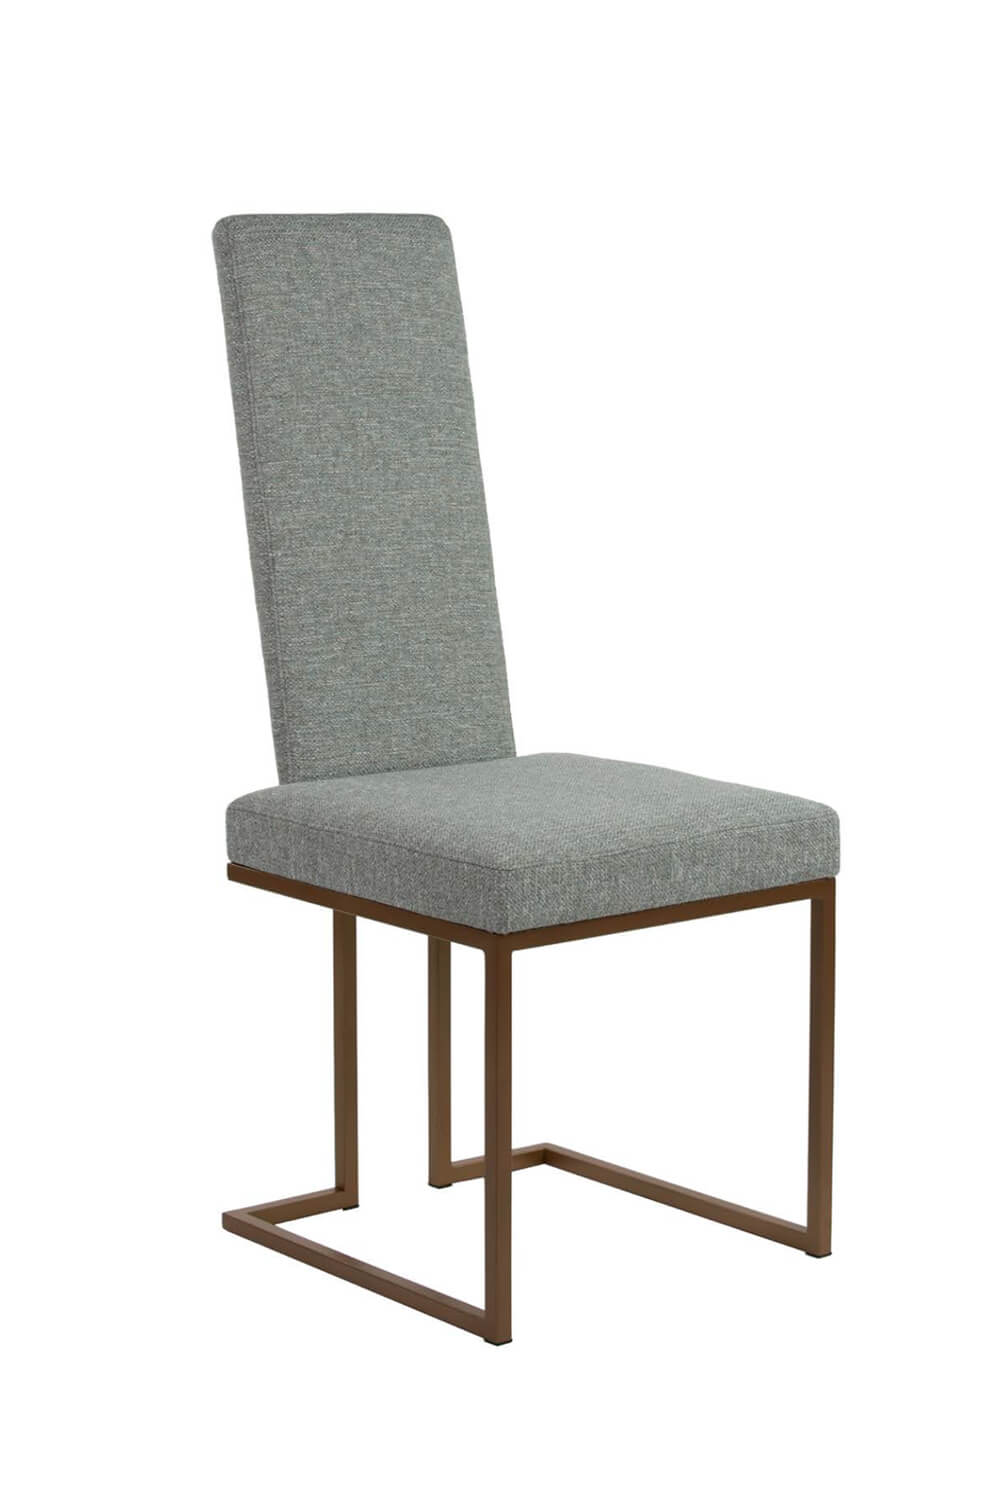 Brentwood Modern Upholstered Dining Chair